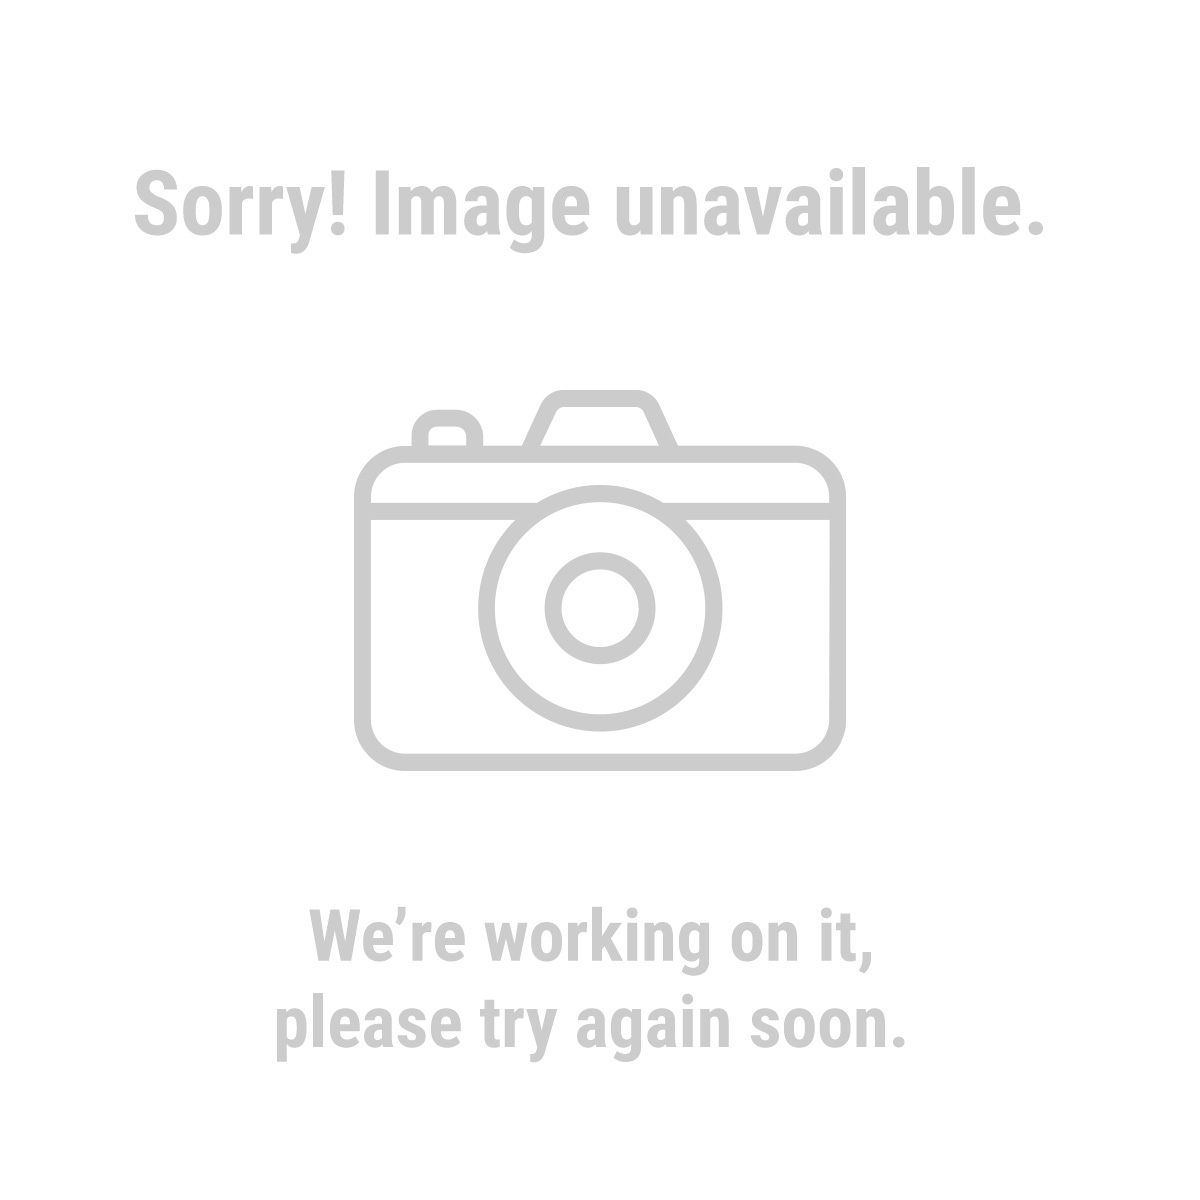 Bunker Hill Security 66364 Heavy Duty Bike Lock and Cable